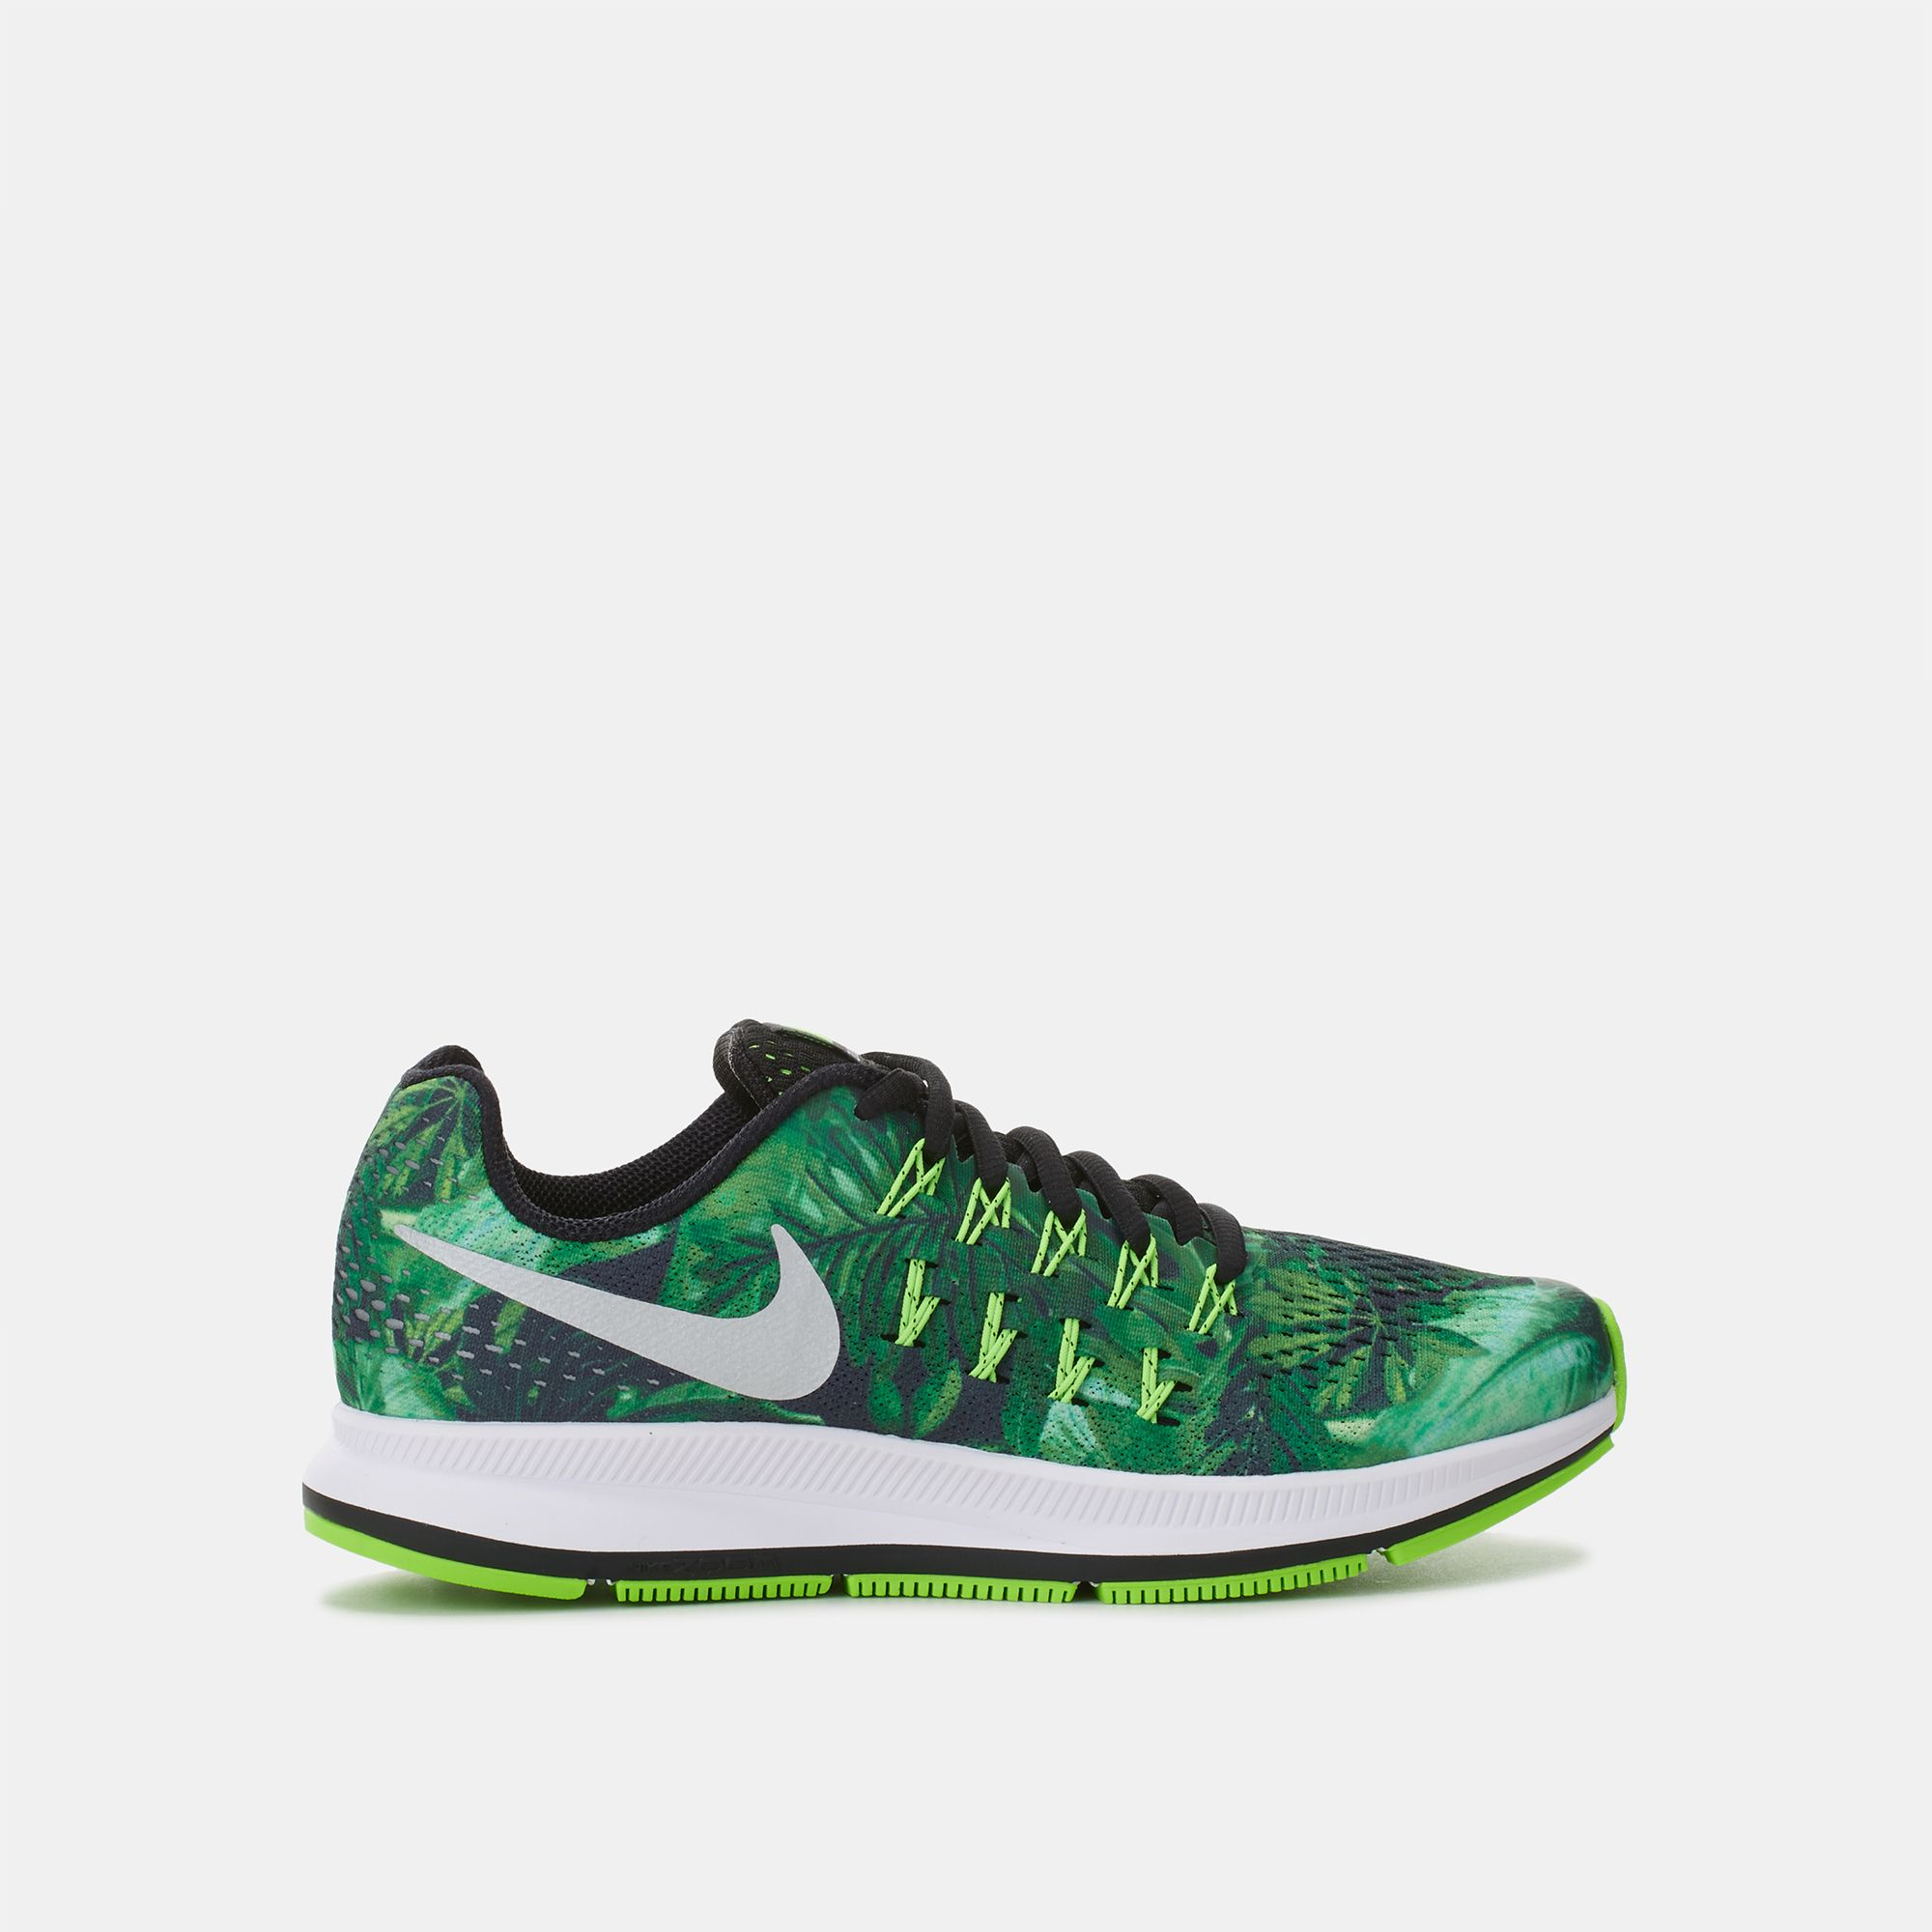 1c833237fef62 Nike Kids Air Zoom Pegasus 33 Grade School Shoe Nike854171 001 in ...